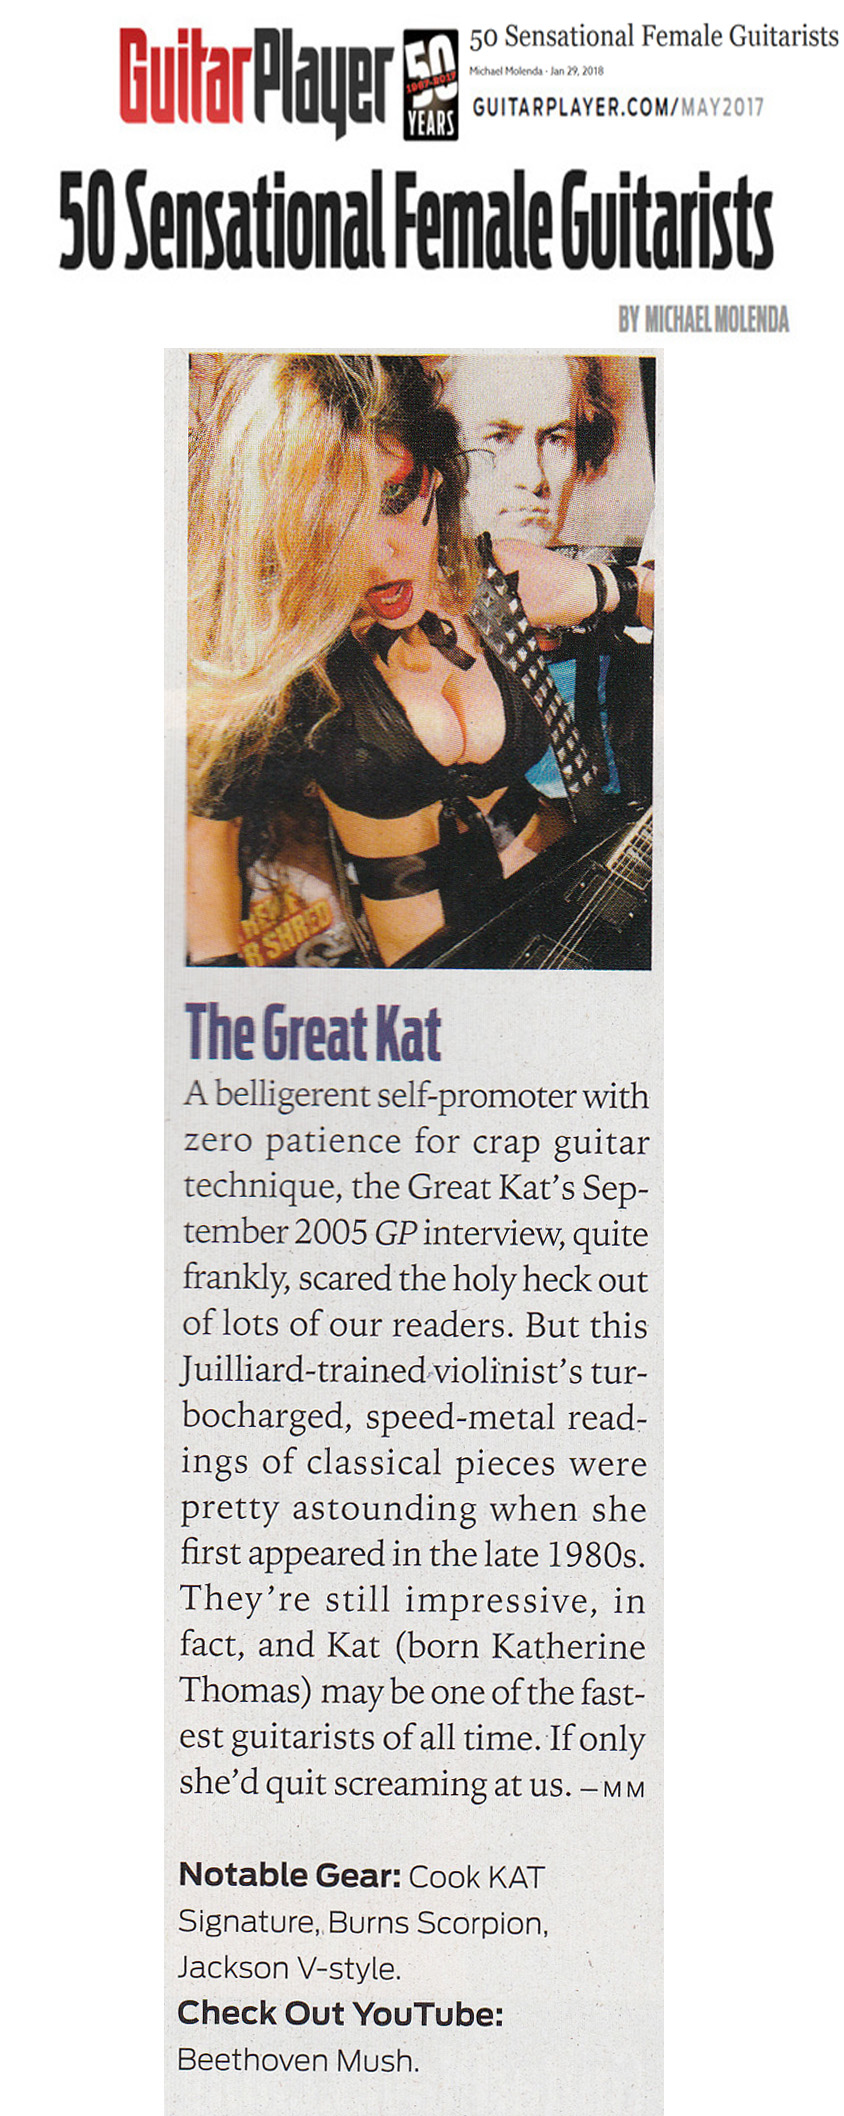 "GUITAR PLAYER MAGAZINE NAMES THE GREAT KAT ""50 SENSATIONAL FEMALE GUITARISTS""! ""The Great Kat. This Juilliard-trained violinist's turbocharged, speed-metal readings of classical pieces were pretty astounding when she first appeared…They're still impressive, in fact, and Kat (born Katherine Thomas) may be one of the fastest guitarists of all time."" – Michael Molenda, Guitar Player Magazine READ at http://www.guitarplayer.com/artists/1013/50-sensational-female-guitarists/62327"